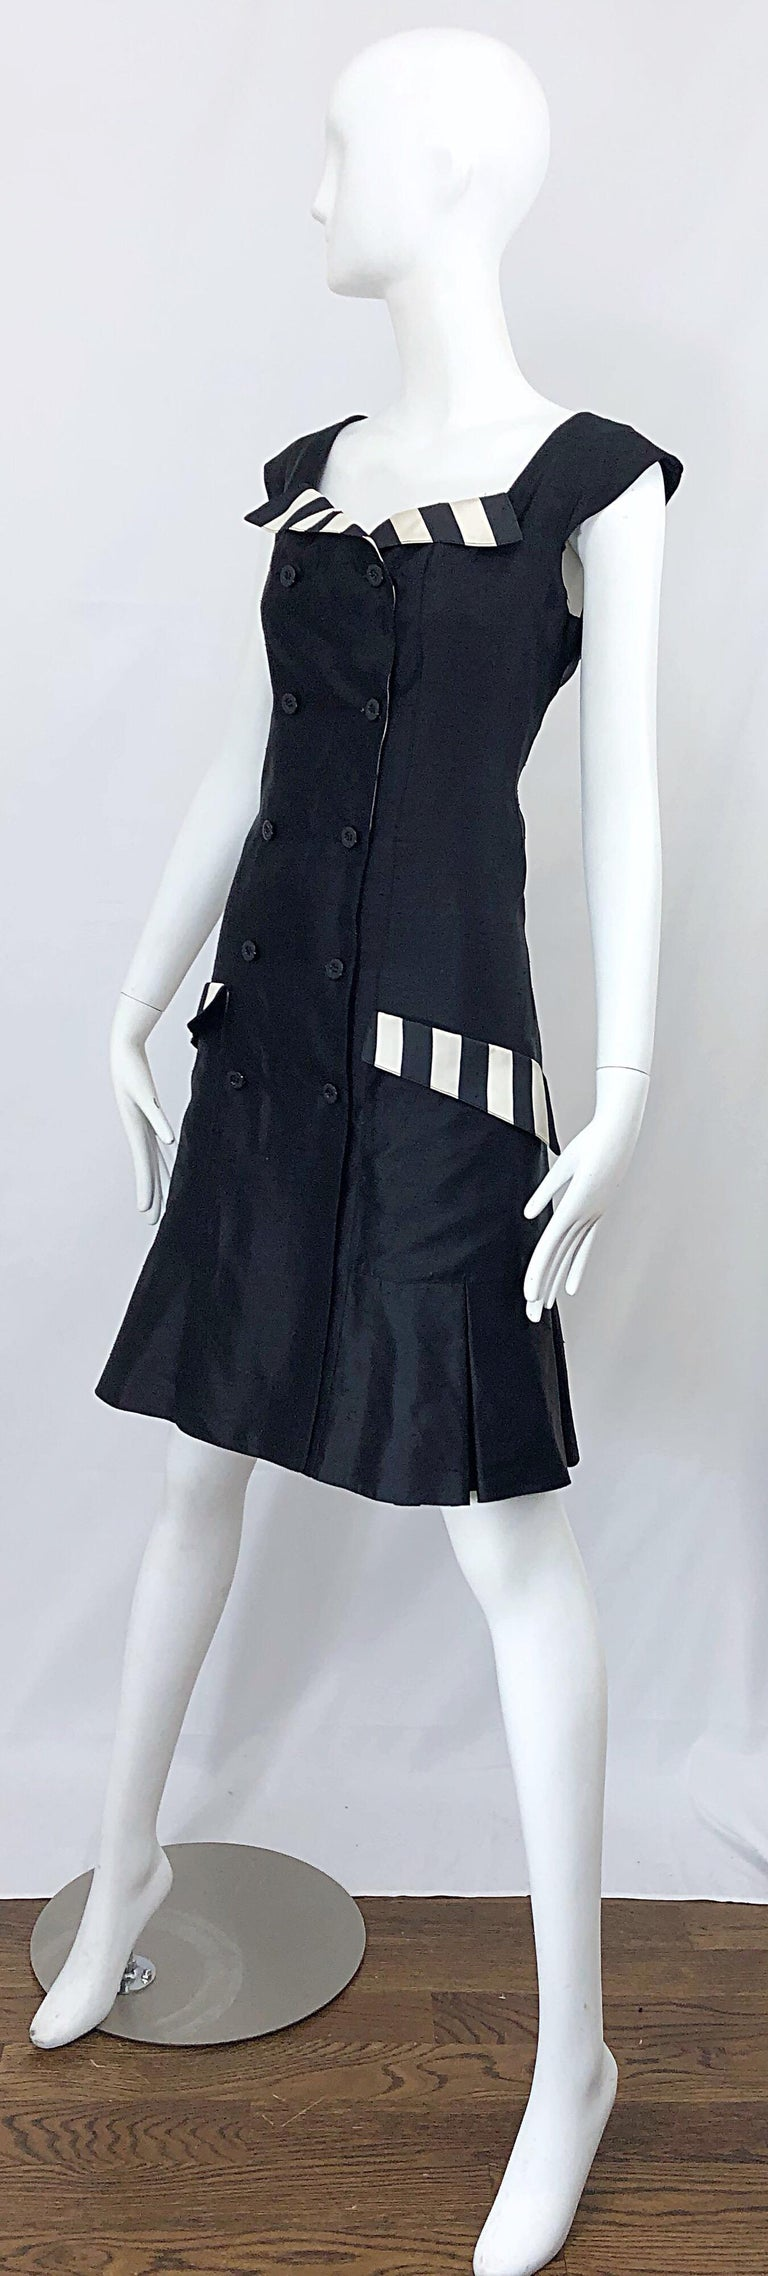 Vintage Bernard Perris Size 12 Black and White Striped 1990s Silk Dress For Sale 4